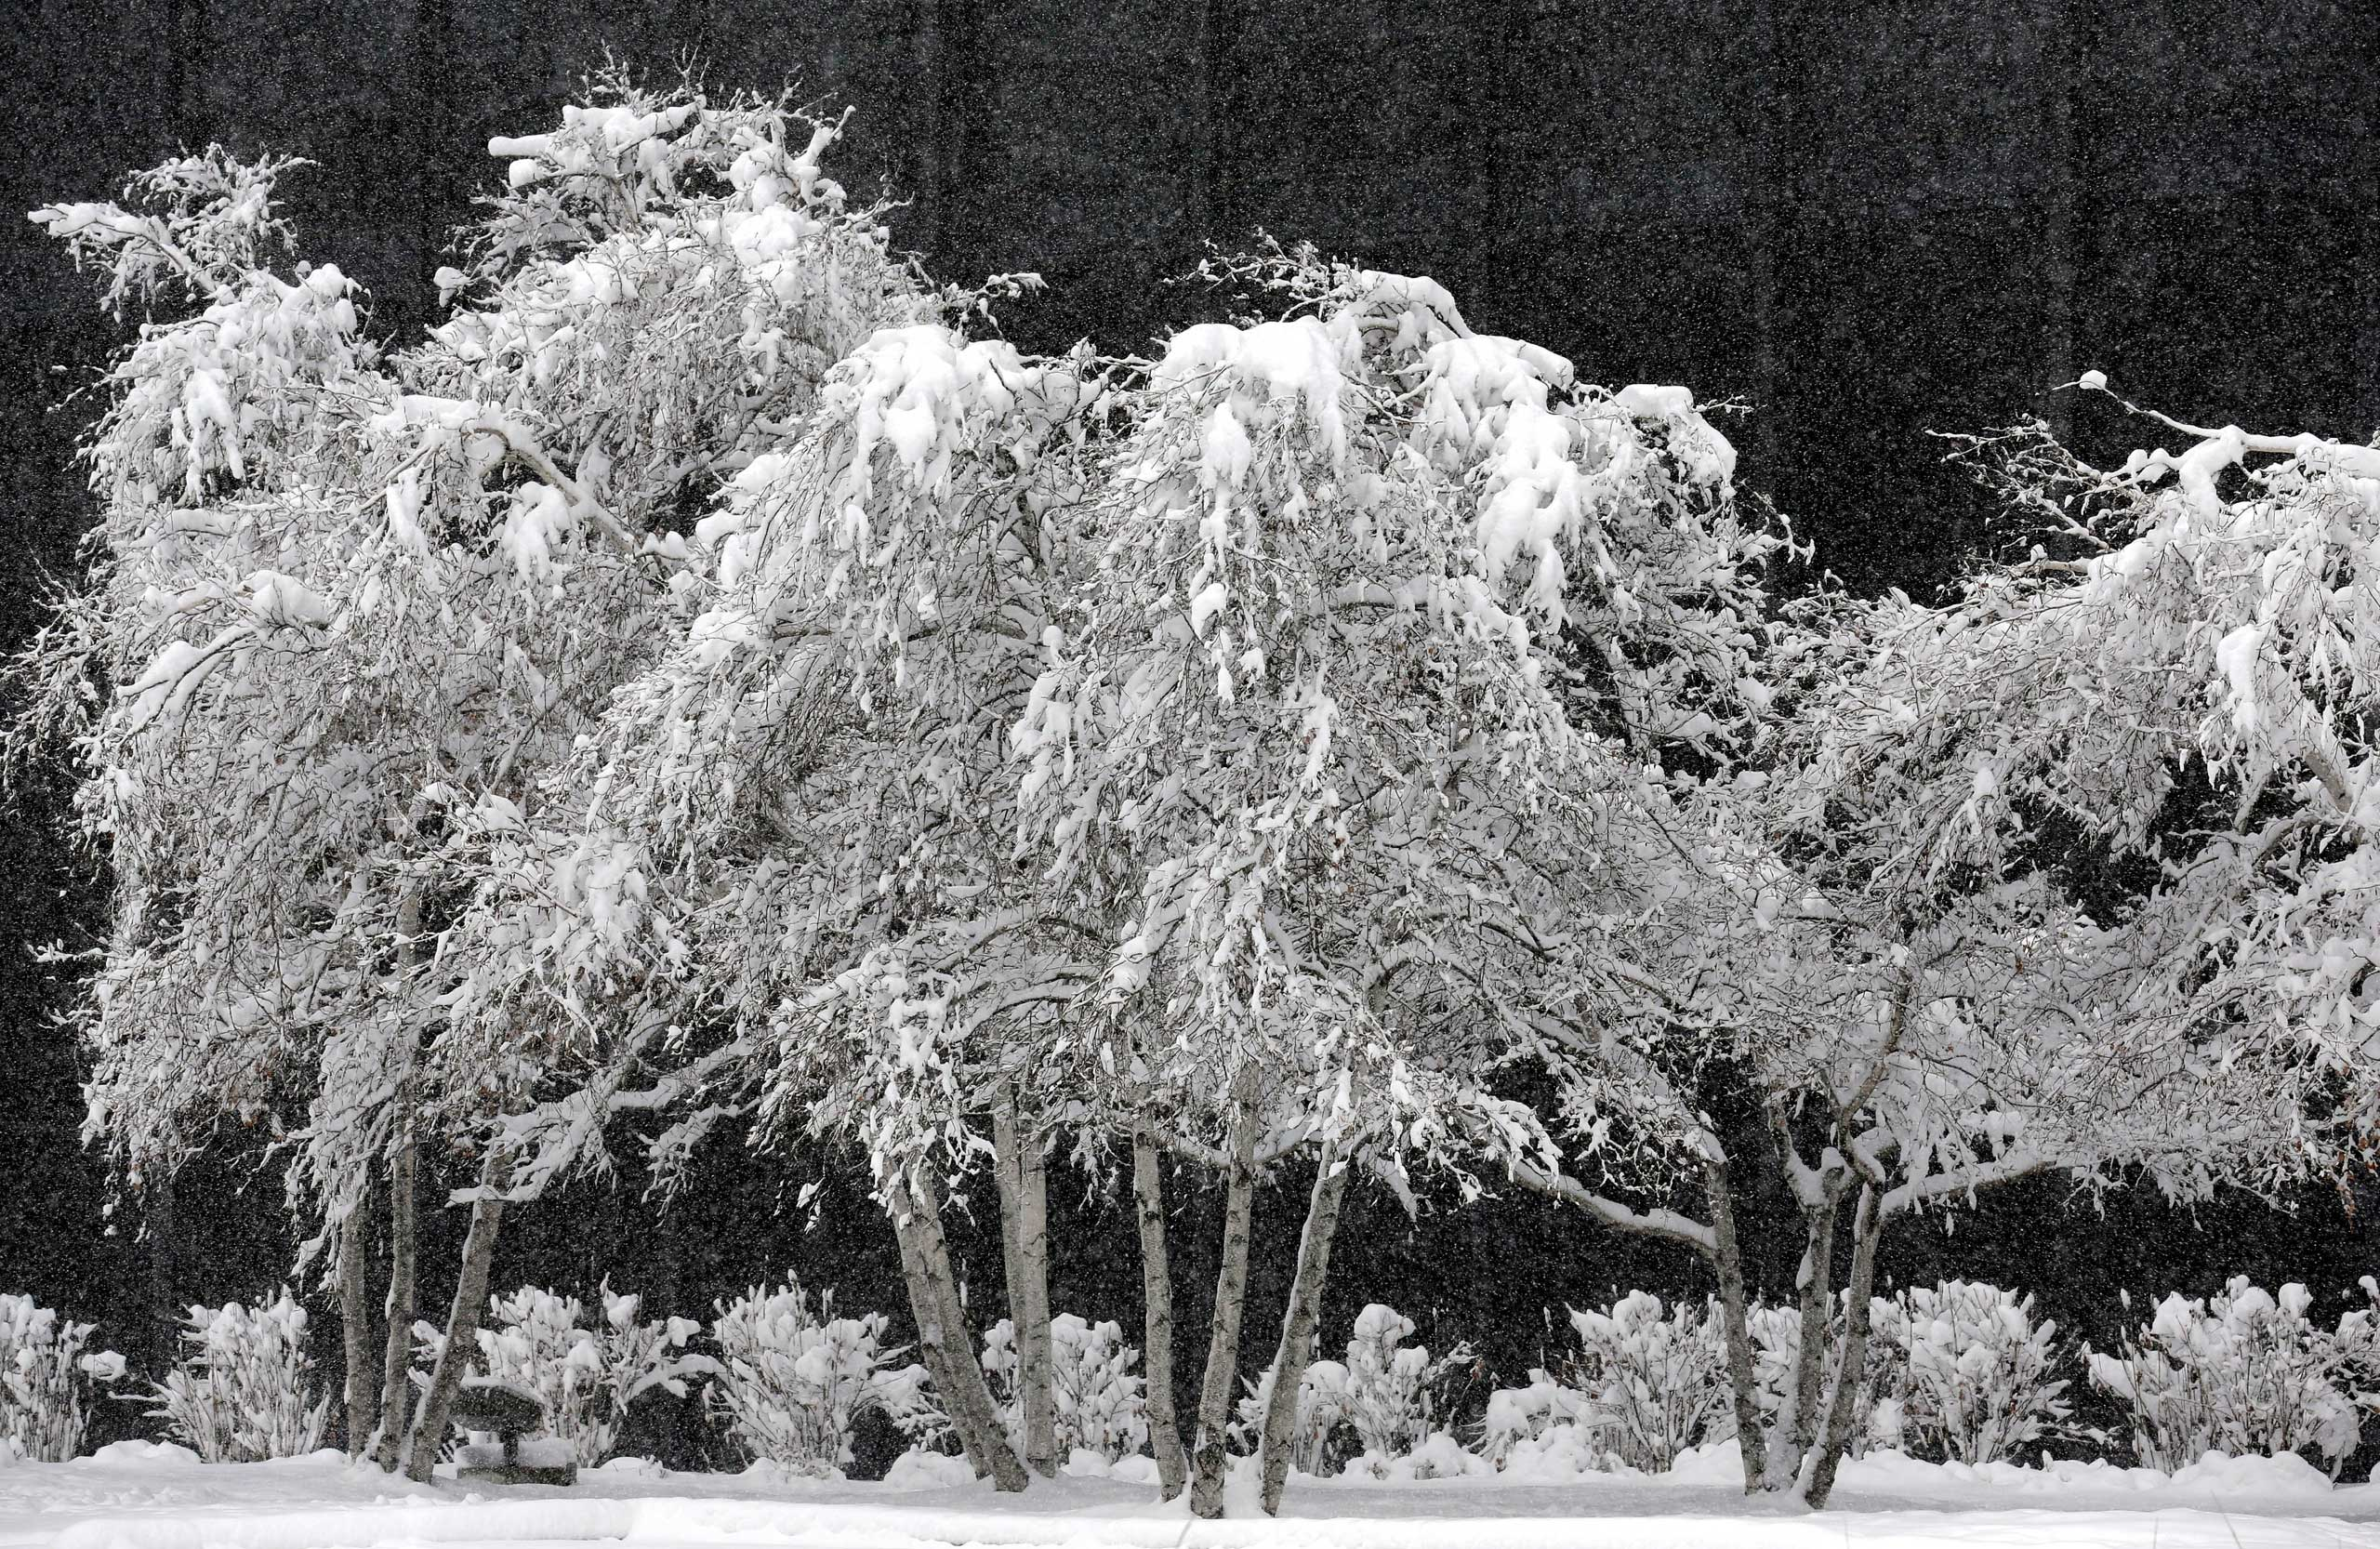 Feb. 1, 2015. Snow covers trees at O'Hare International Airport in Chicago. The first major winter storm of the year is bearing down on the Chicago region, bringing with it blizzard conditions of heavy snow and strong winds.